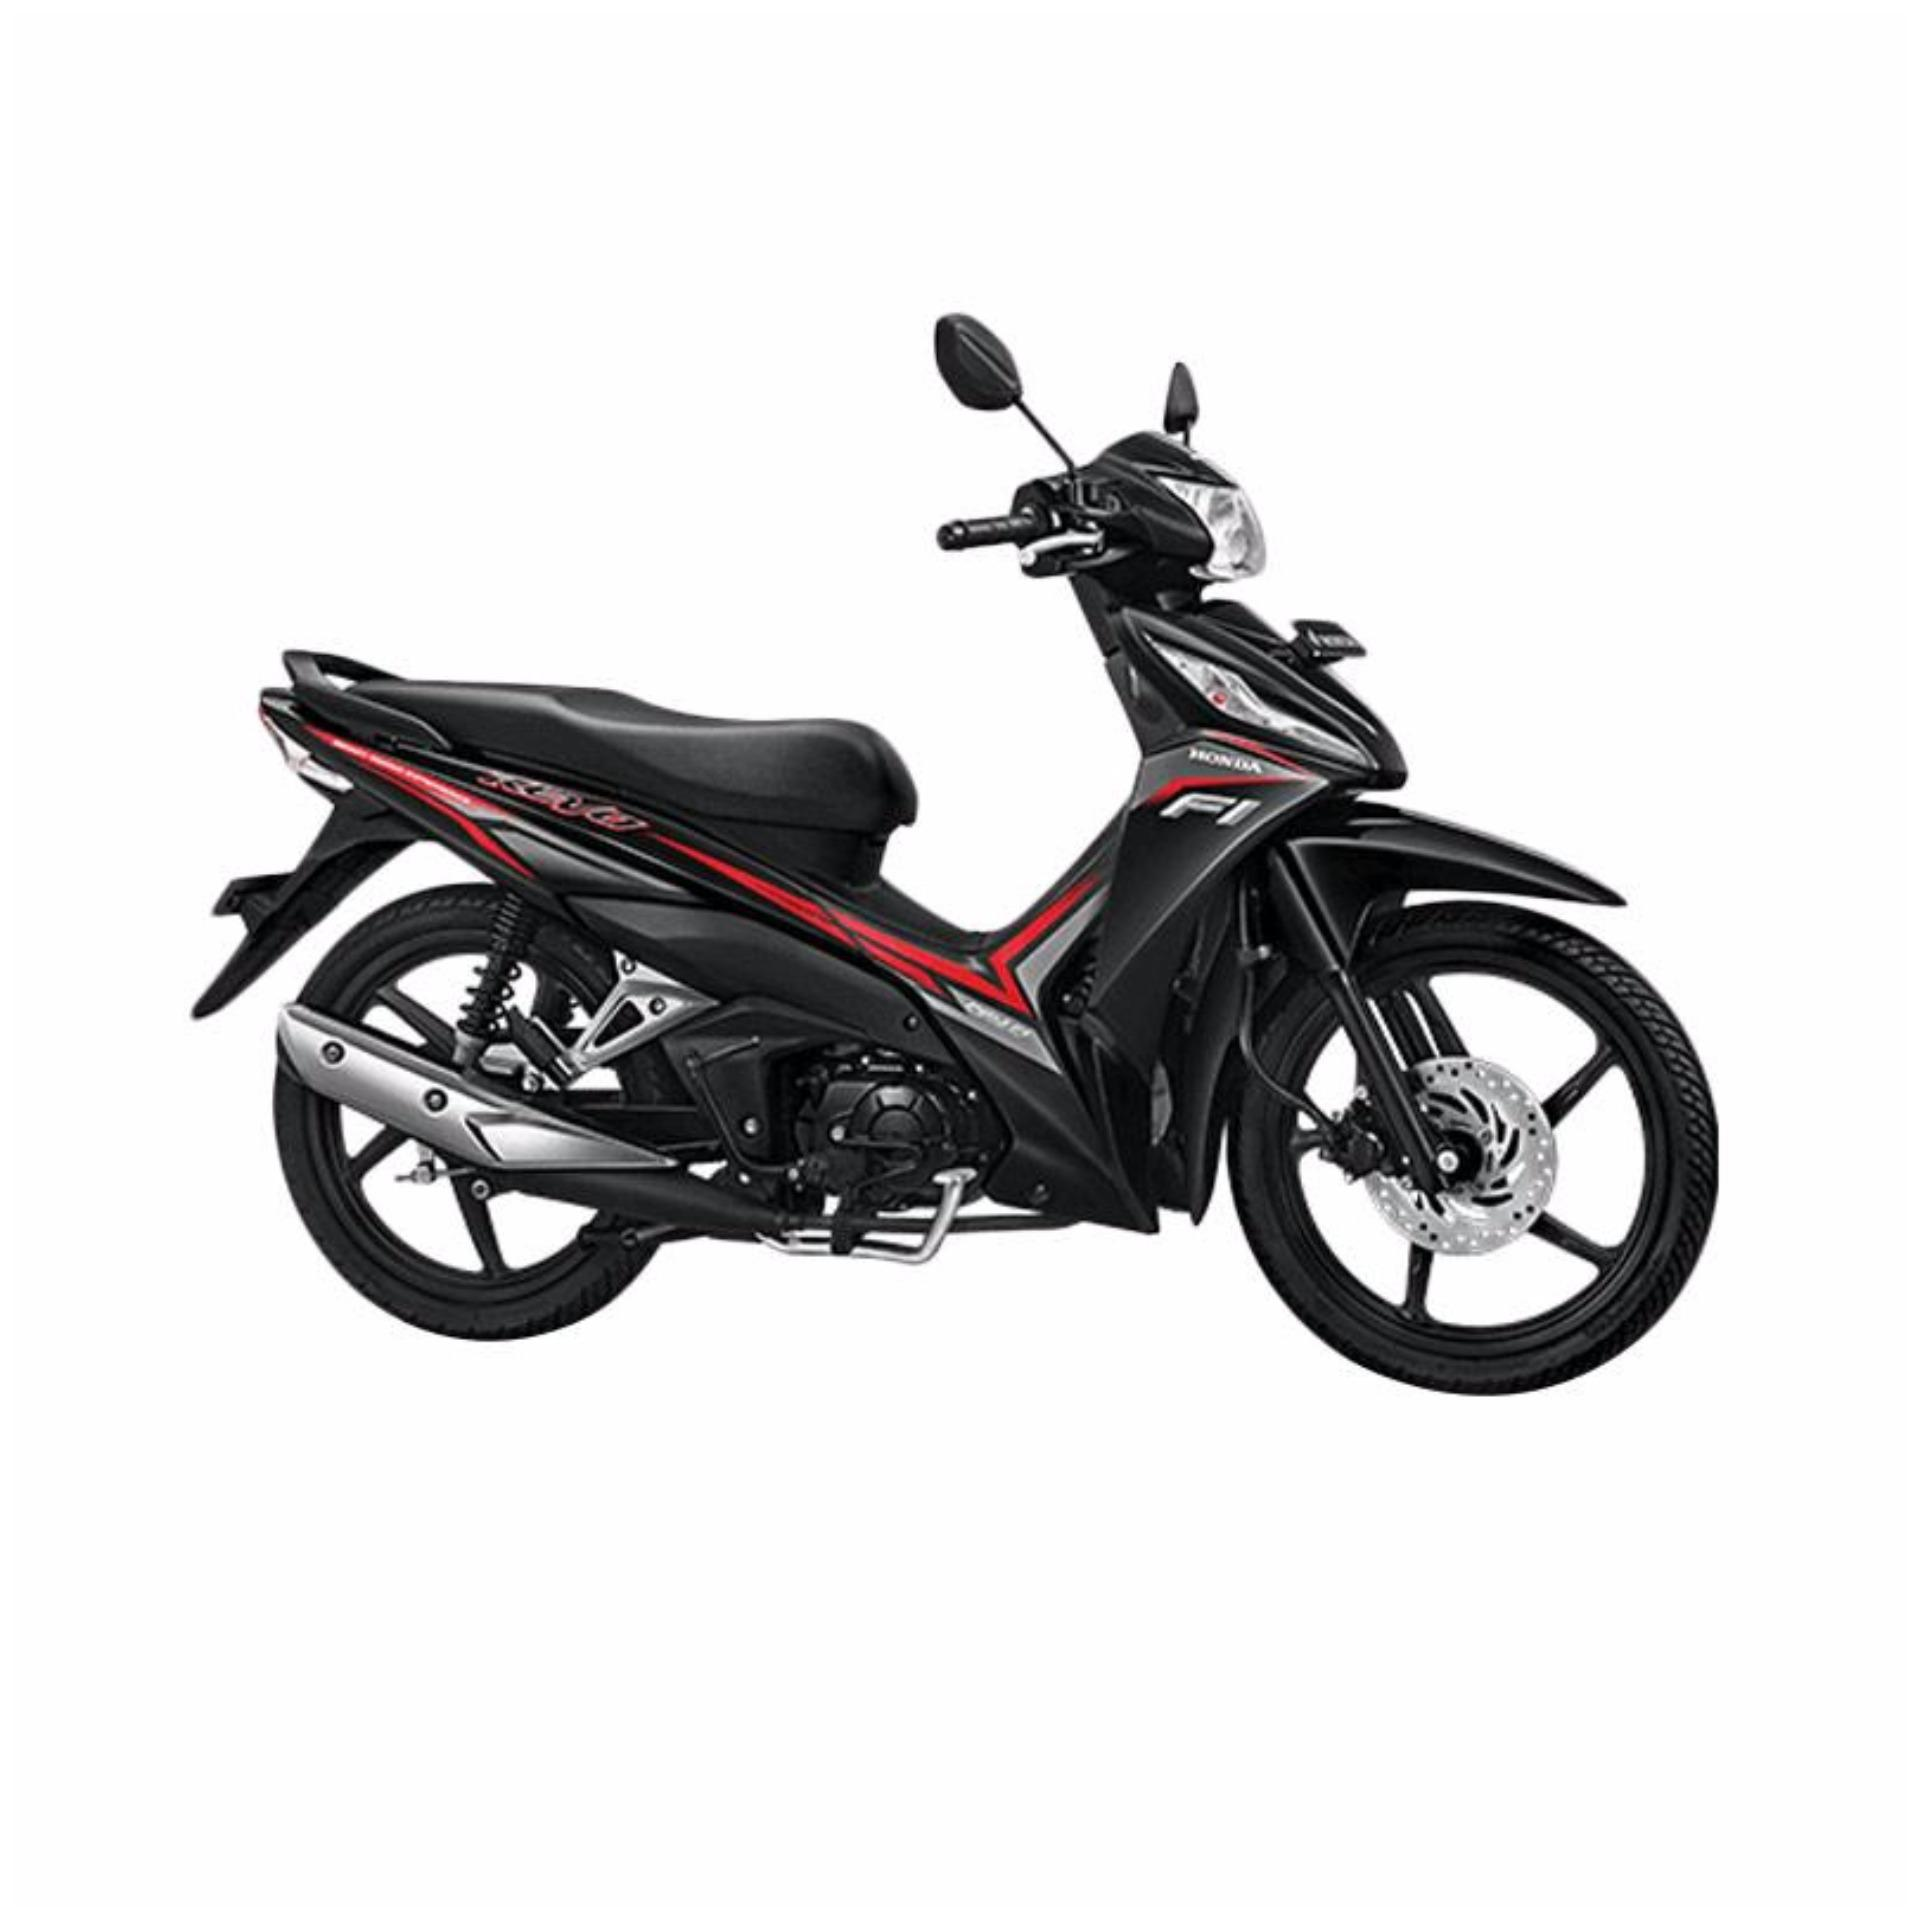 Honda Crf1000l Africa Twin At Tipe Dct Sepeda Motor Red White Otr All New Vario 150 Esp Exclusive Pearl Brebes Fitur A T Source Home